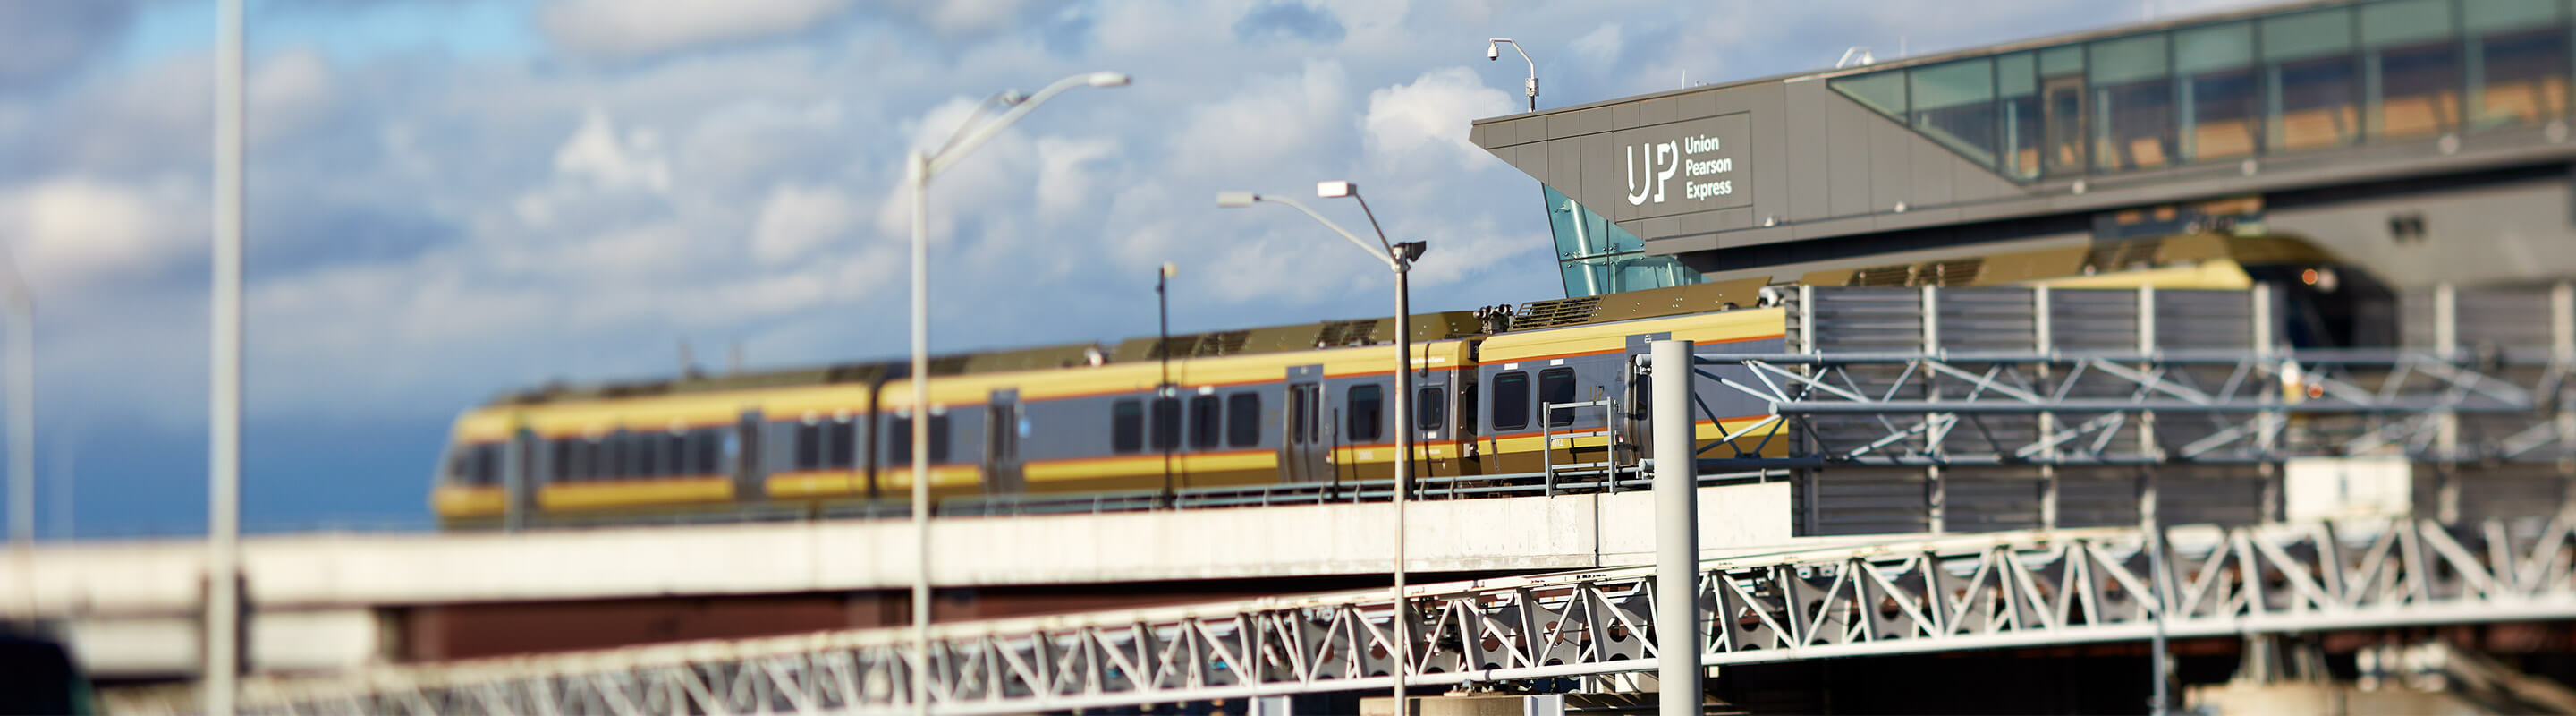 UP Express train arriving at Pearson